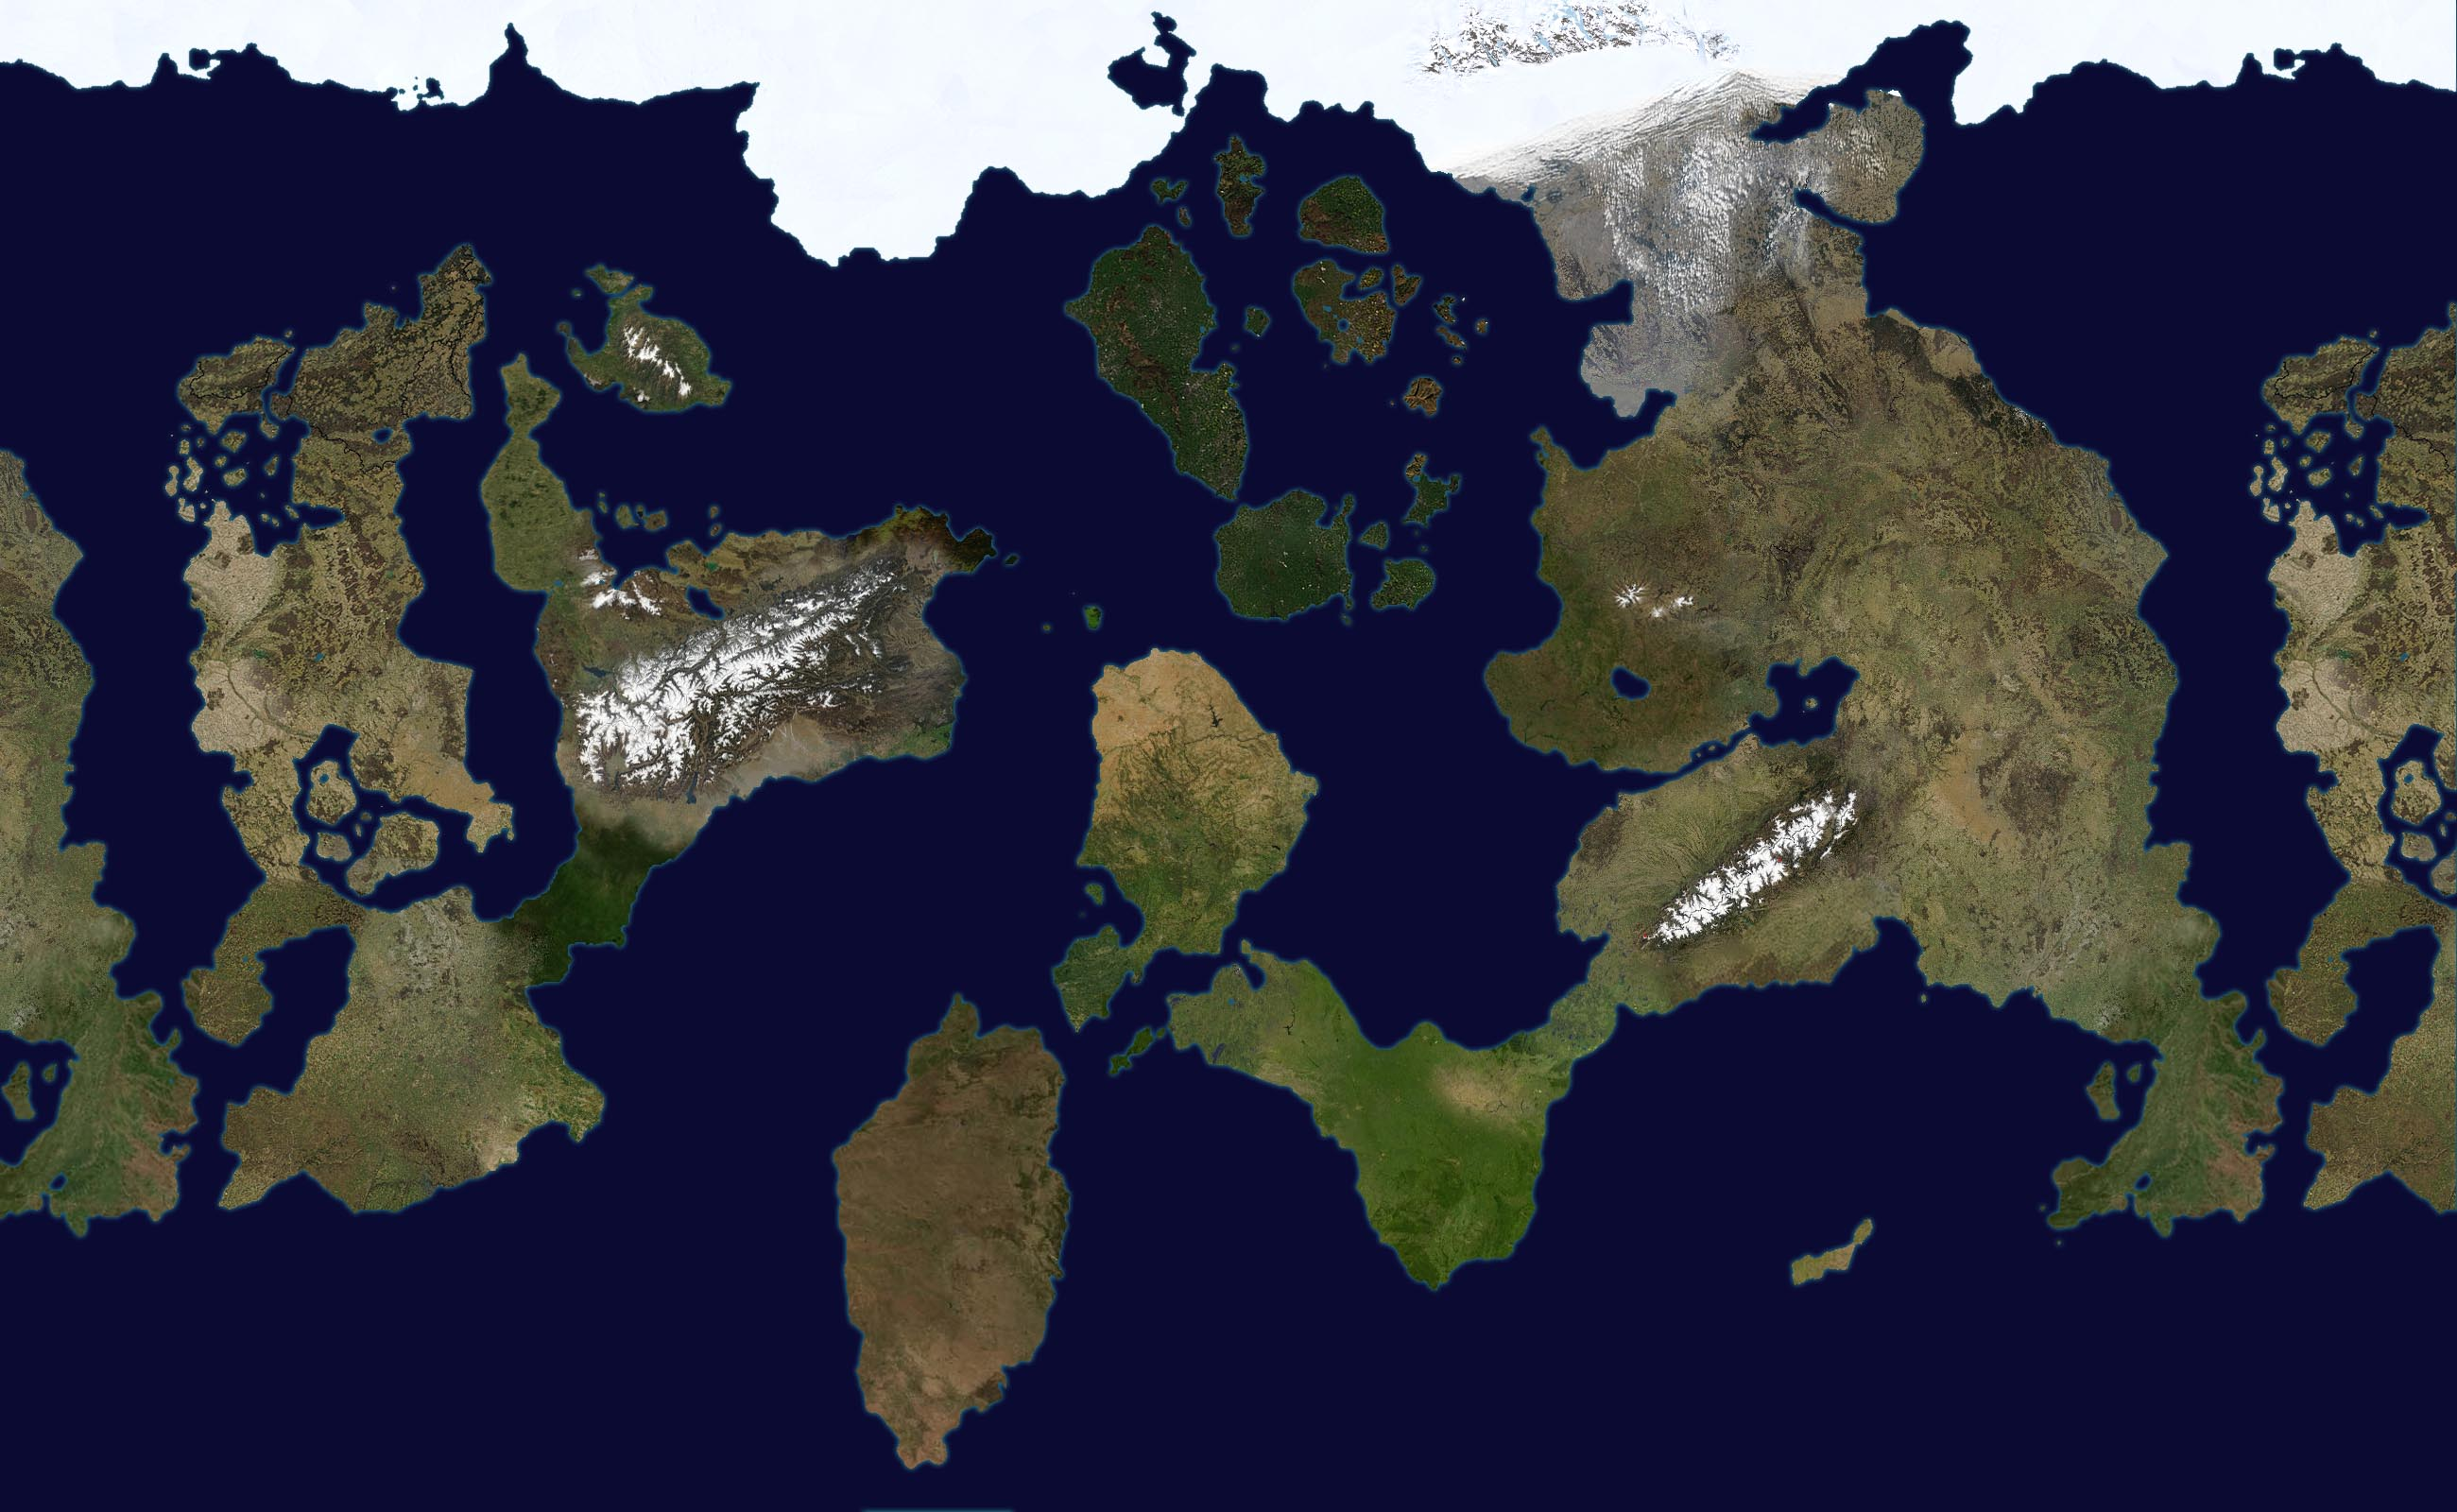 Fantasy World Geographical Map by sheep militia on DeviantArt